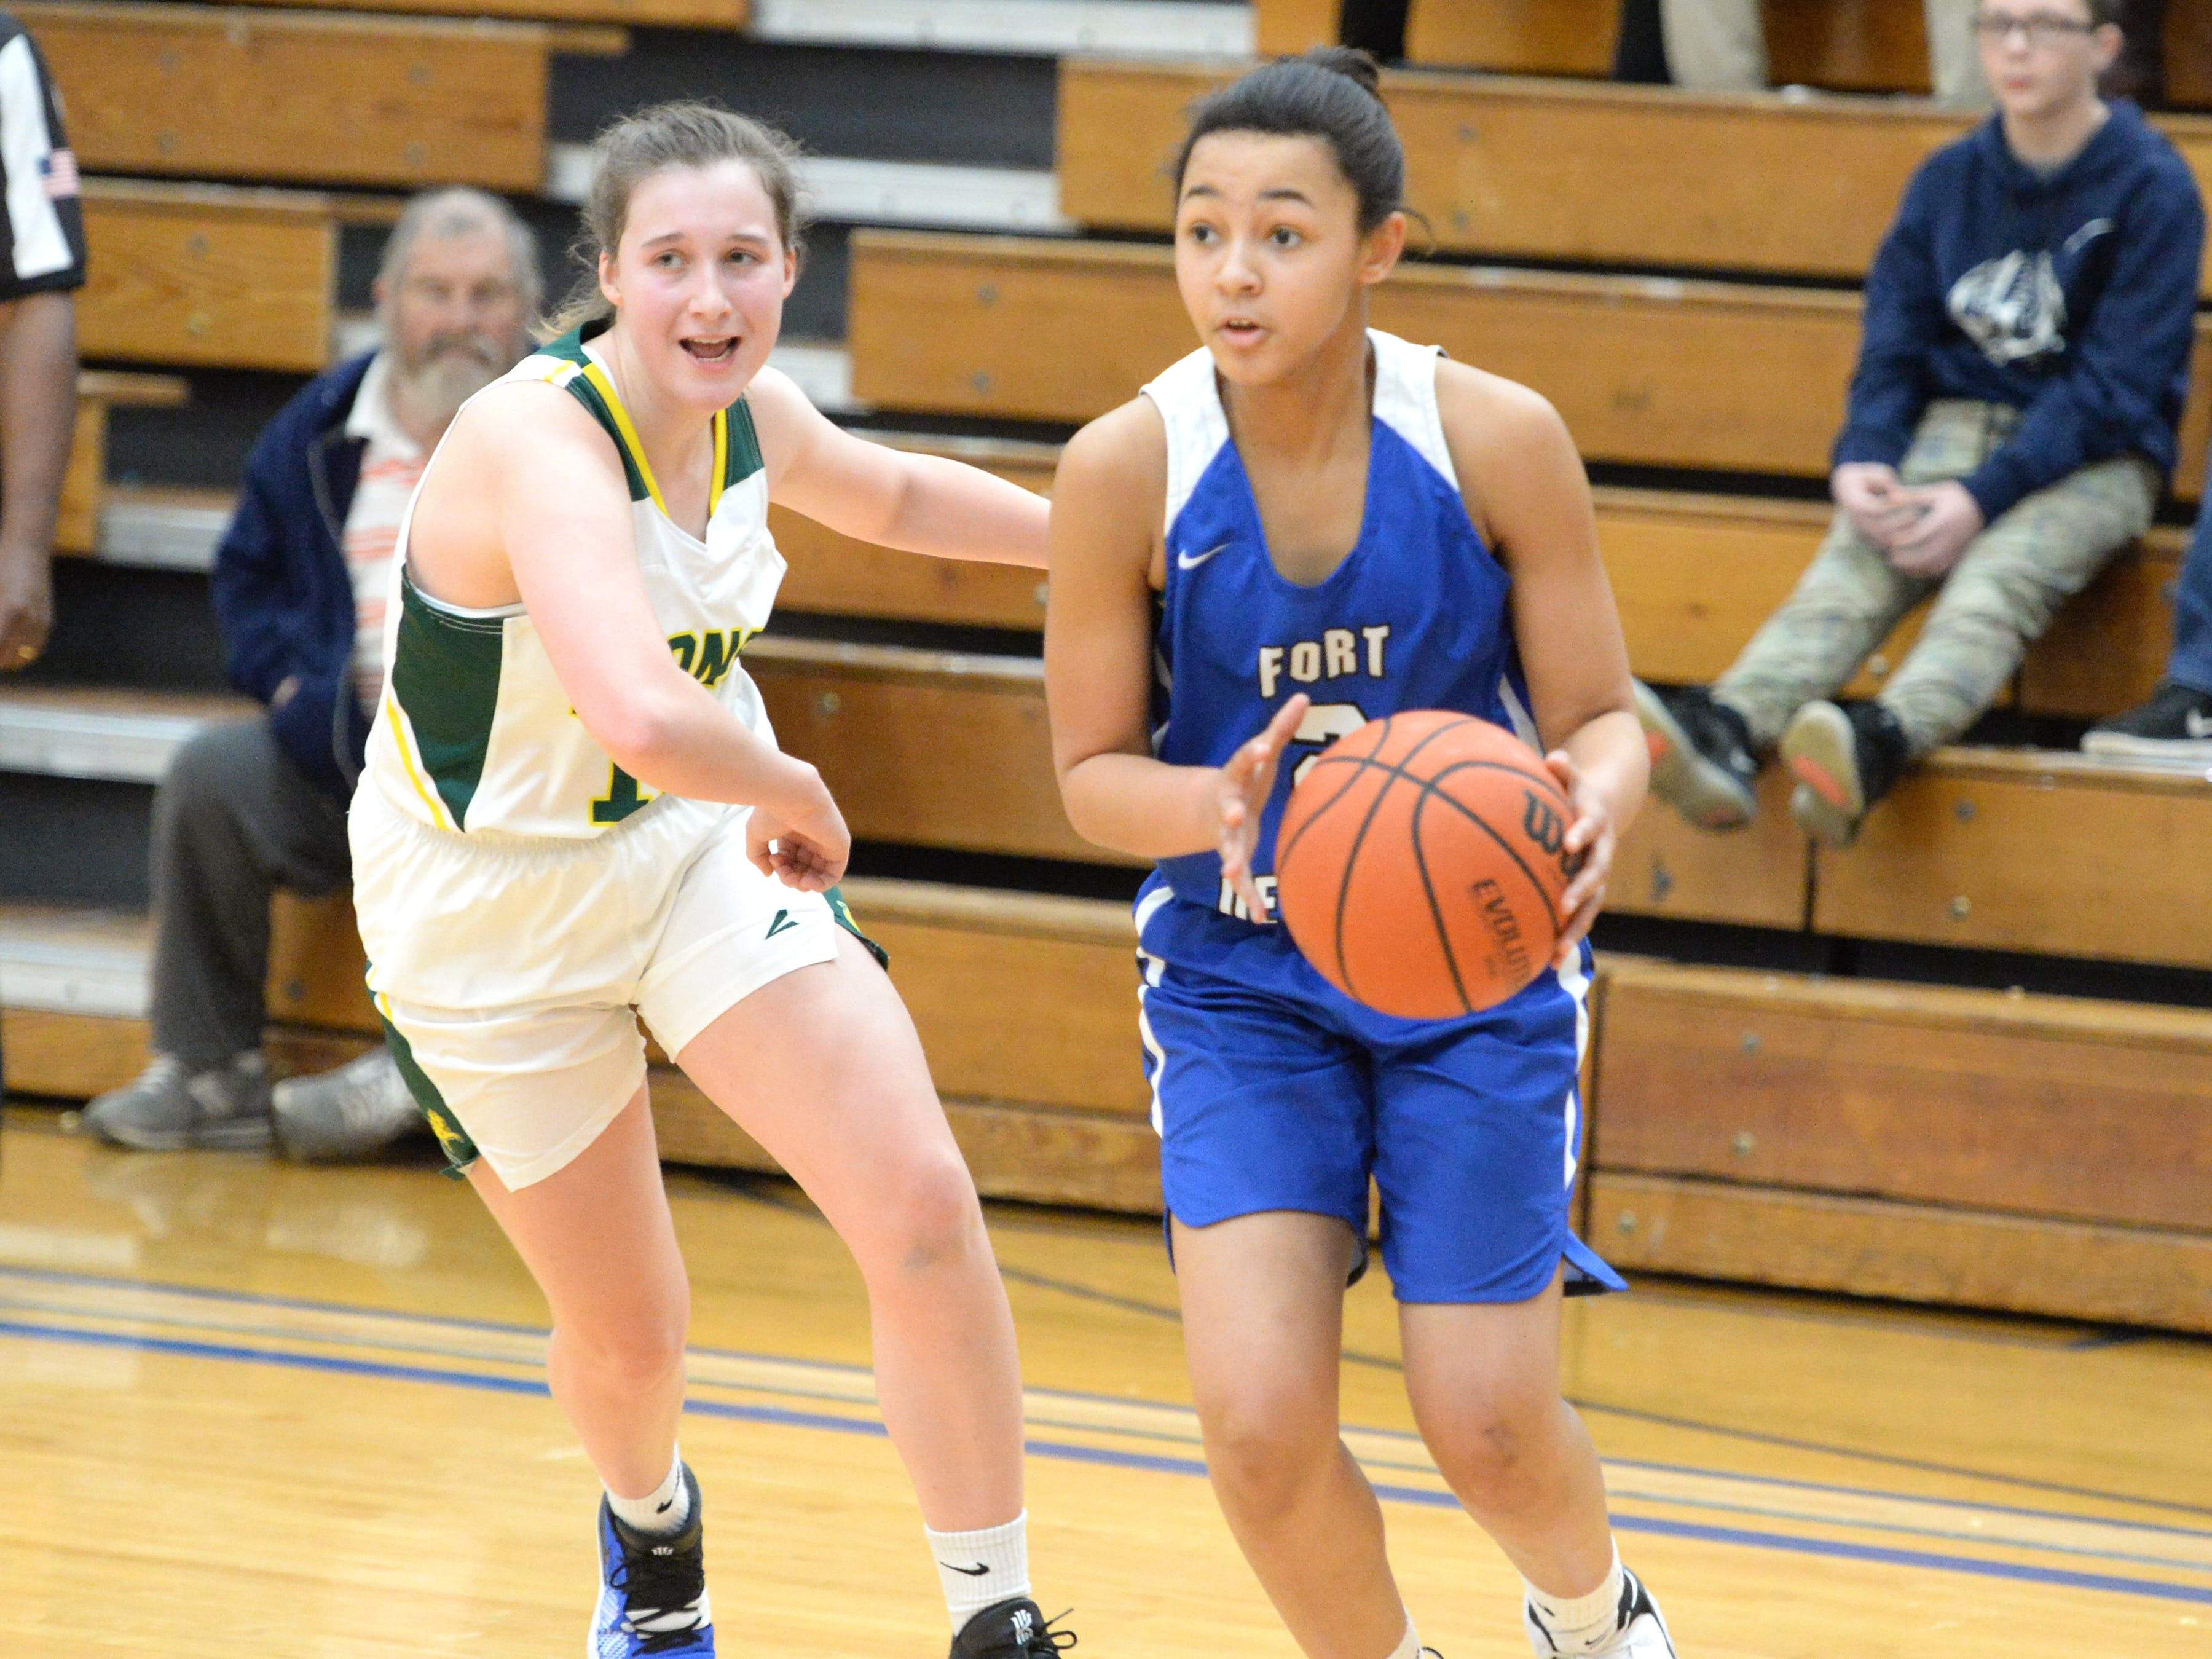 Fort Defiance's Kiersten Ransome finished with 16 points Saturday at the Play of Preemies Showcase at Western Albemarle High School.